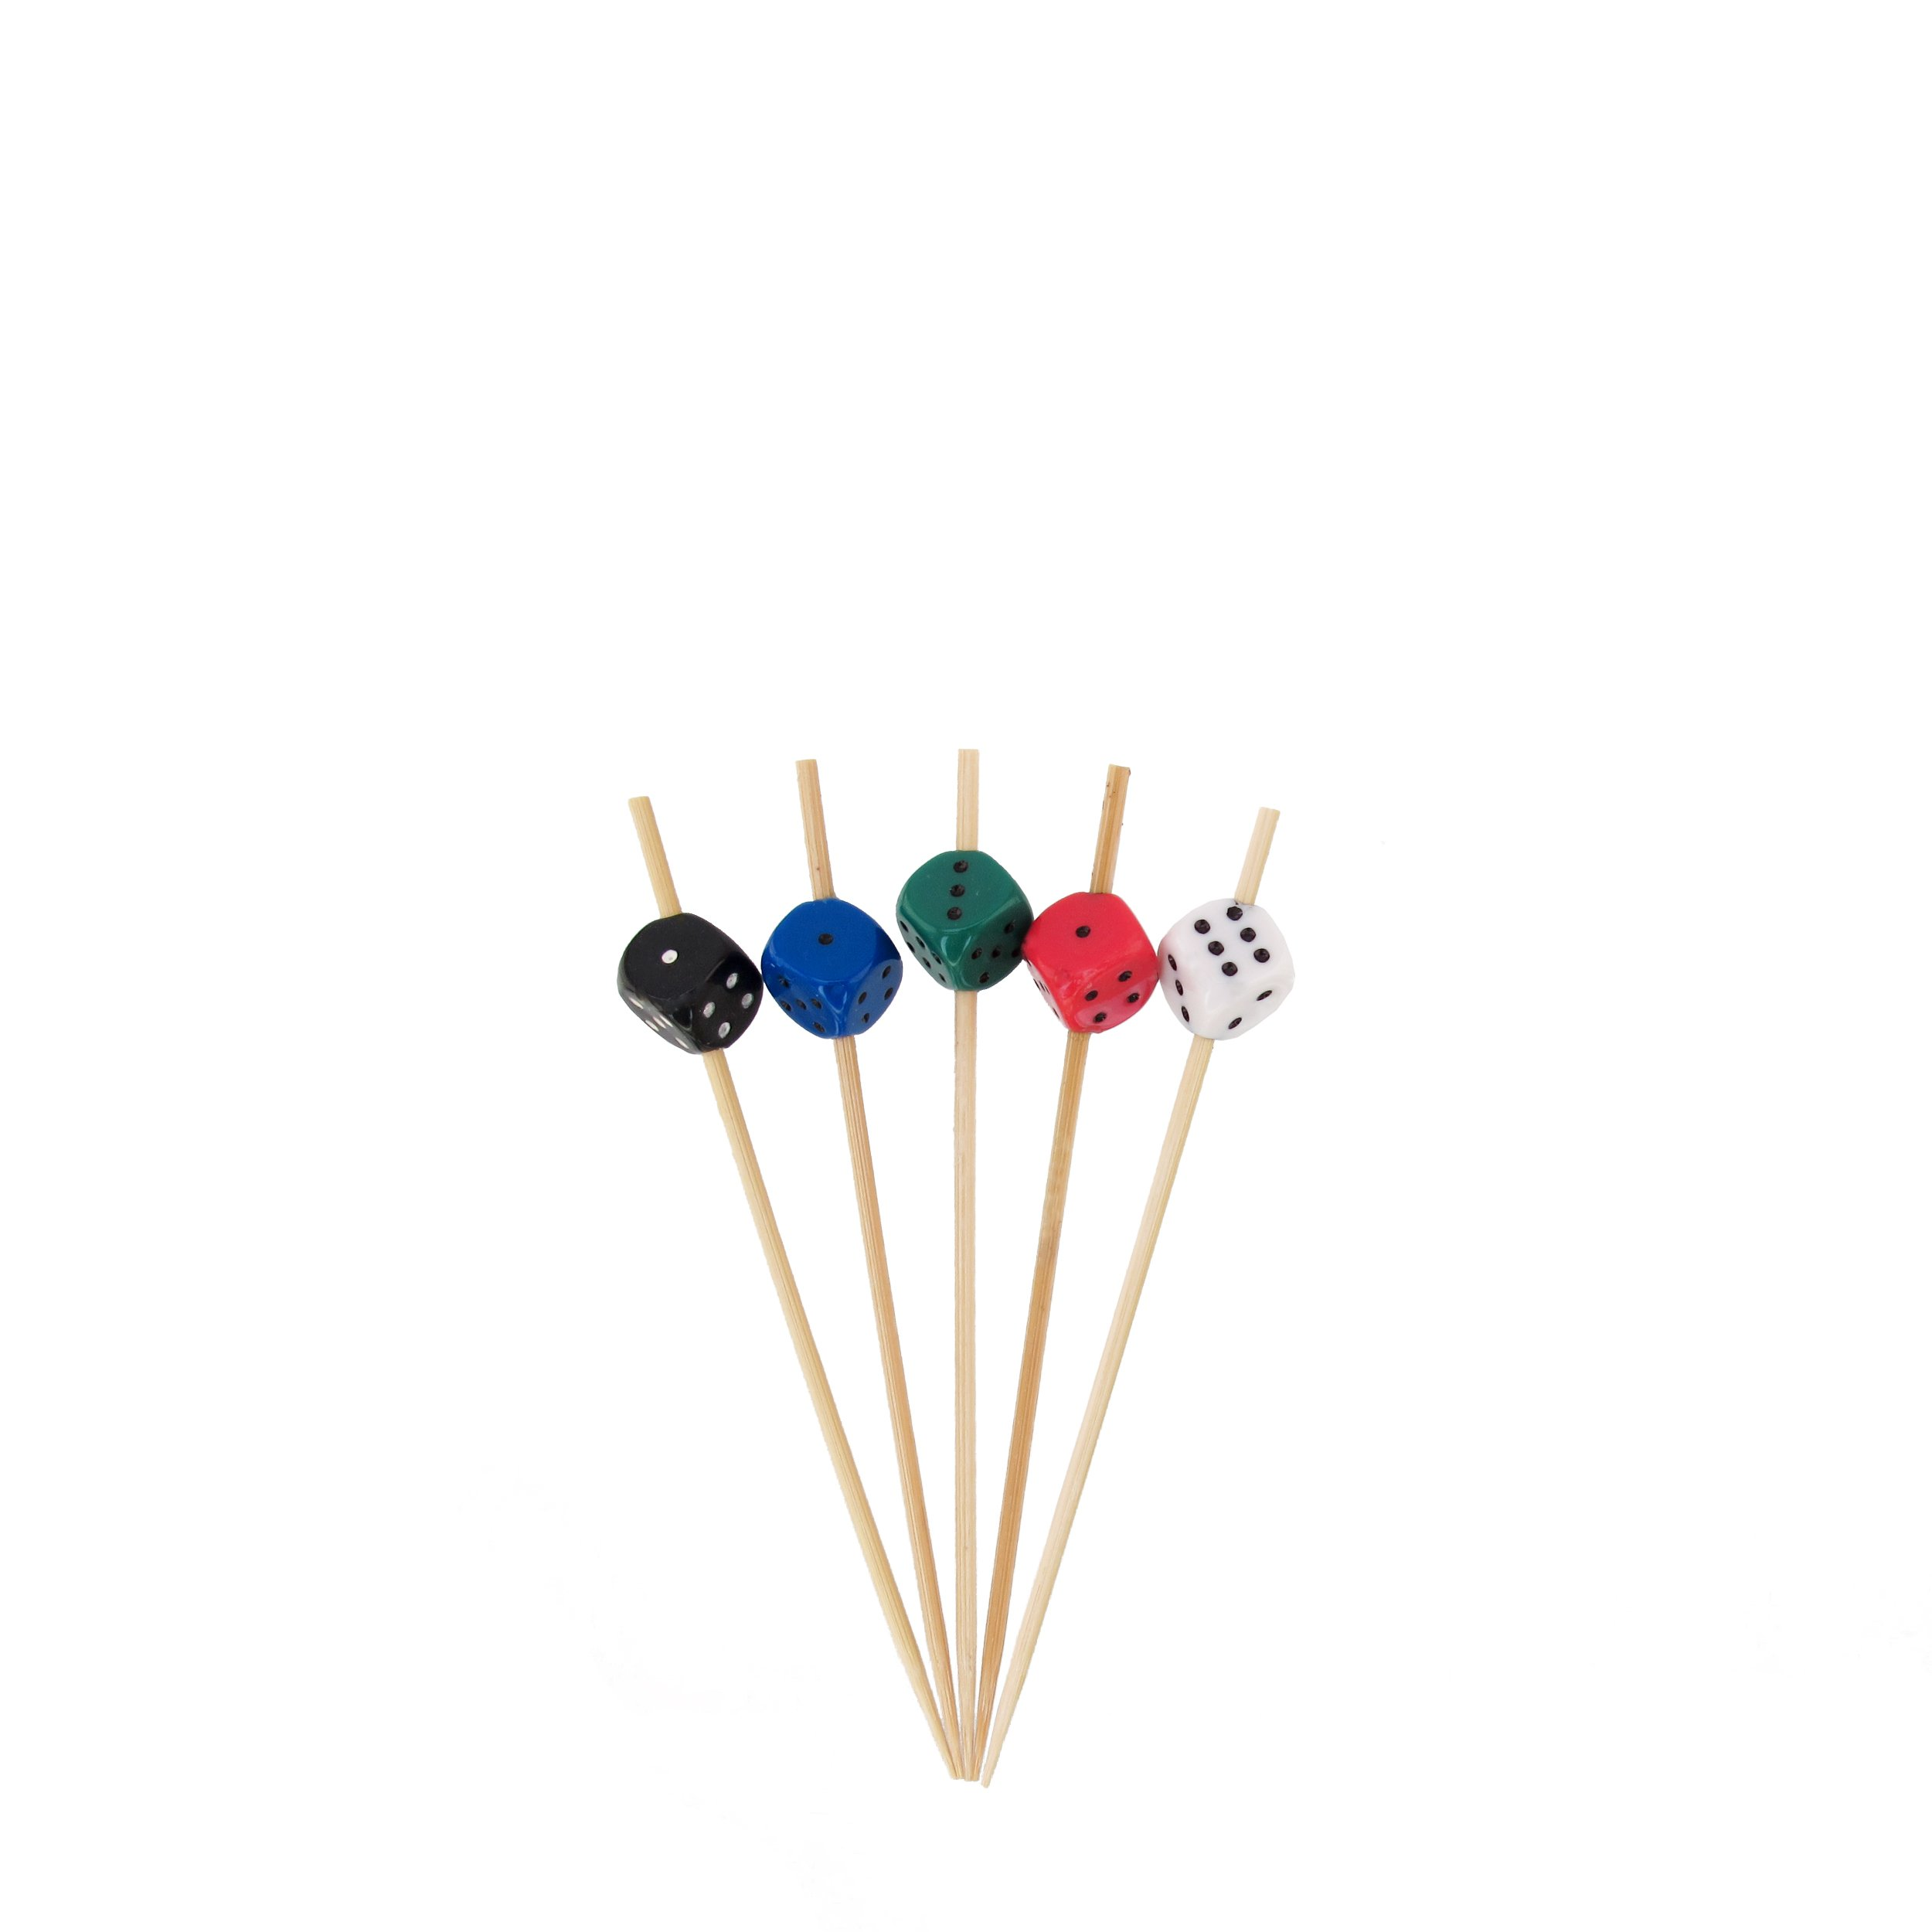 BambooMN 3.9'' Decorative Dice Party End Bamboo Cocktail Fruit Sandwich Picks Skewers for Catered Events, Holiday's, Restaurants or Buffets Party Supplies, Assortment, 100 Pieces